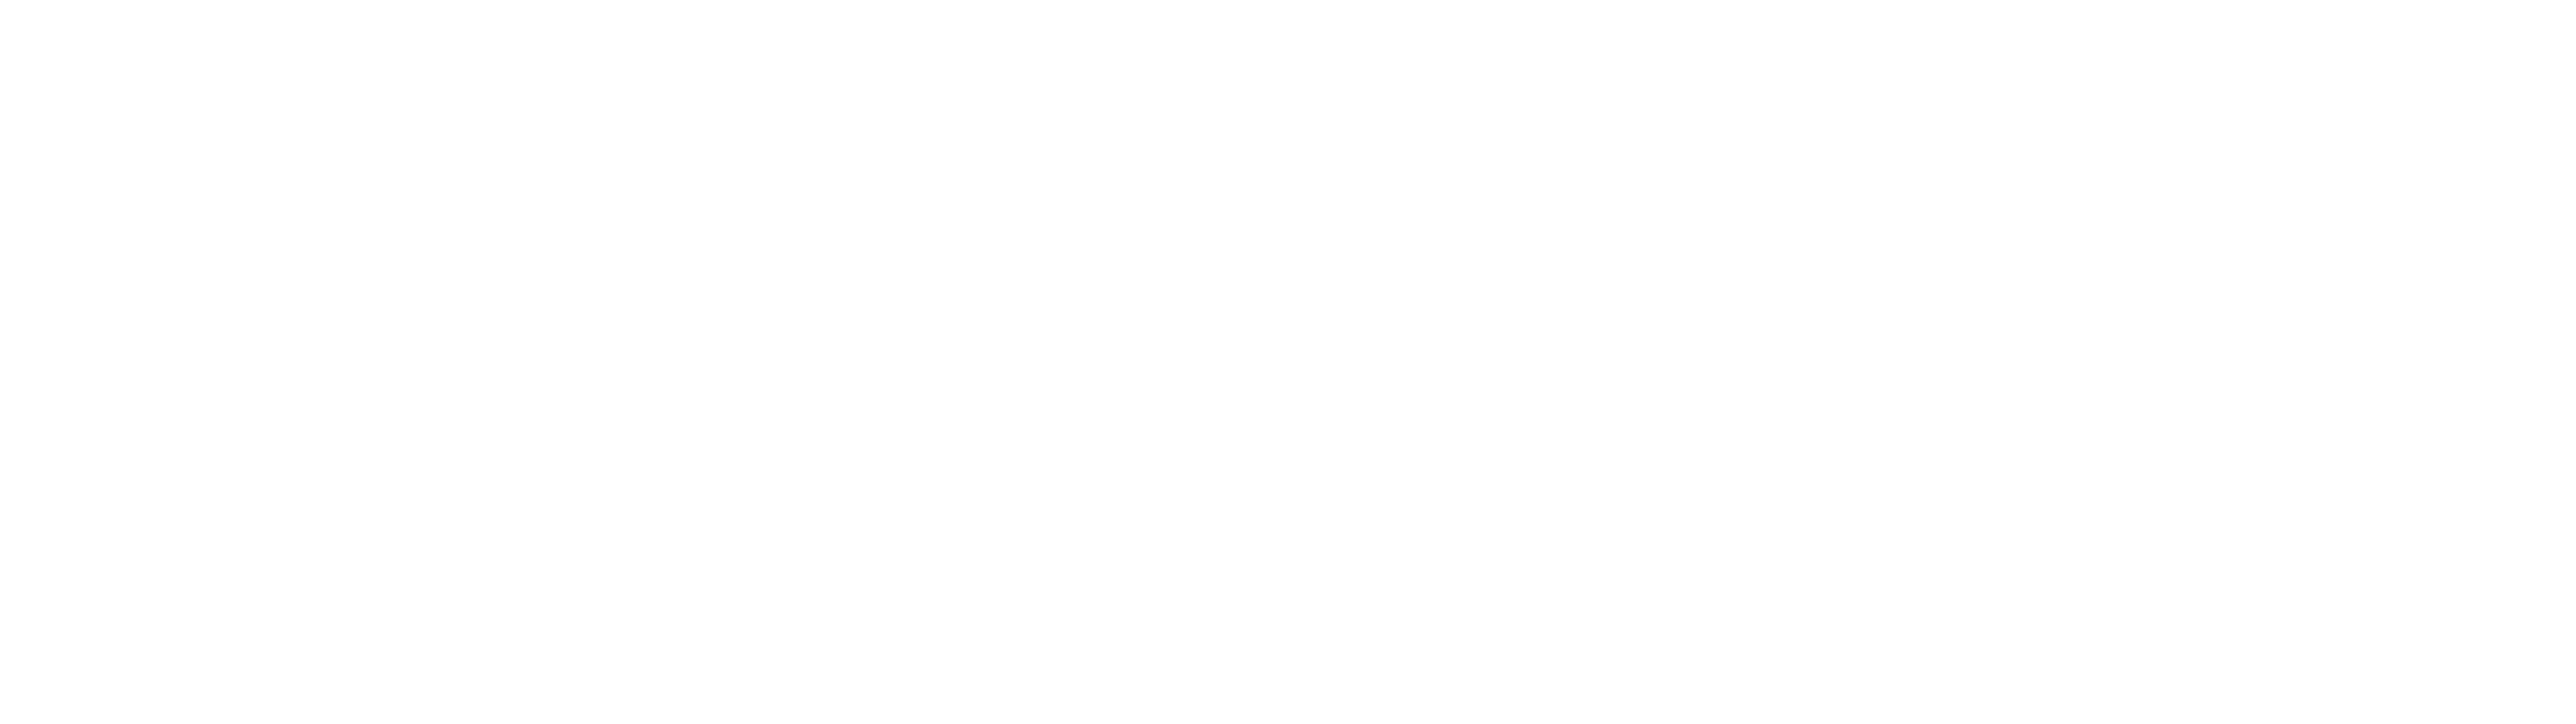 Medium Logo and Icon